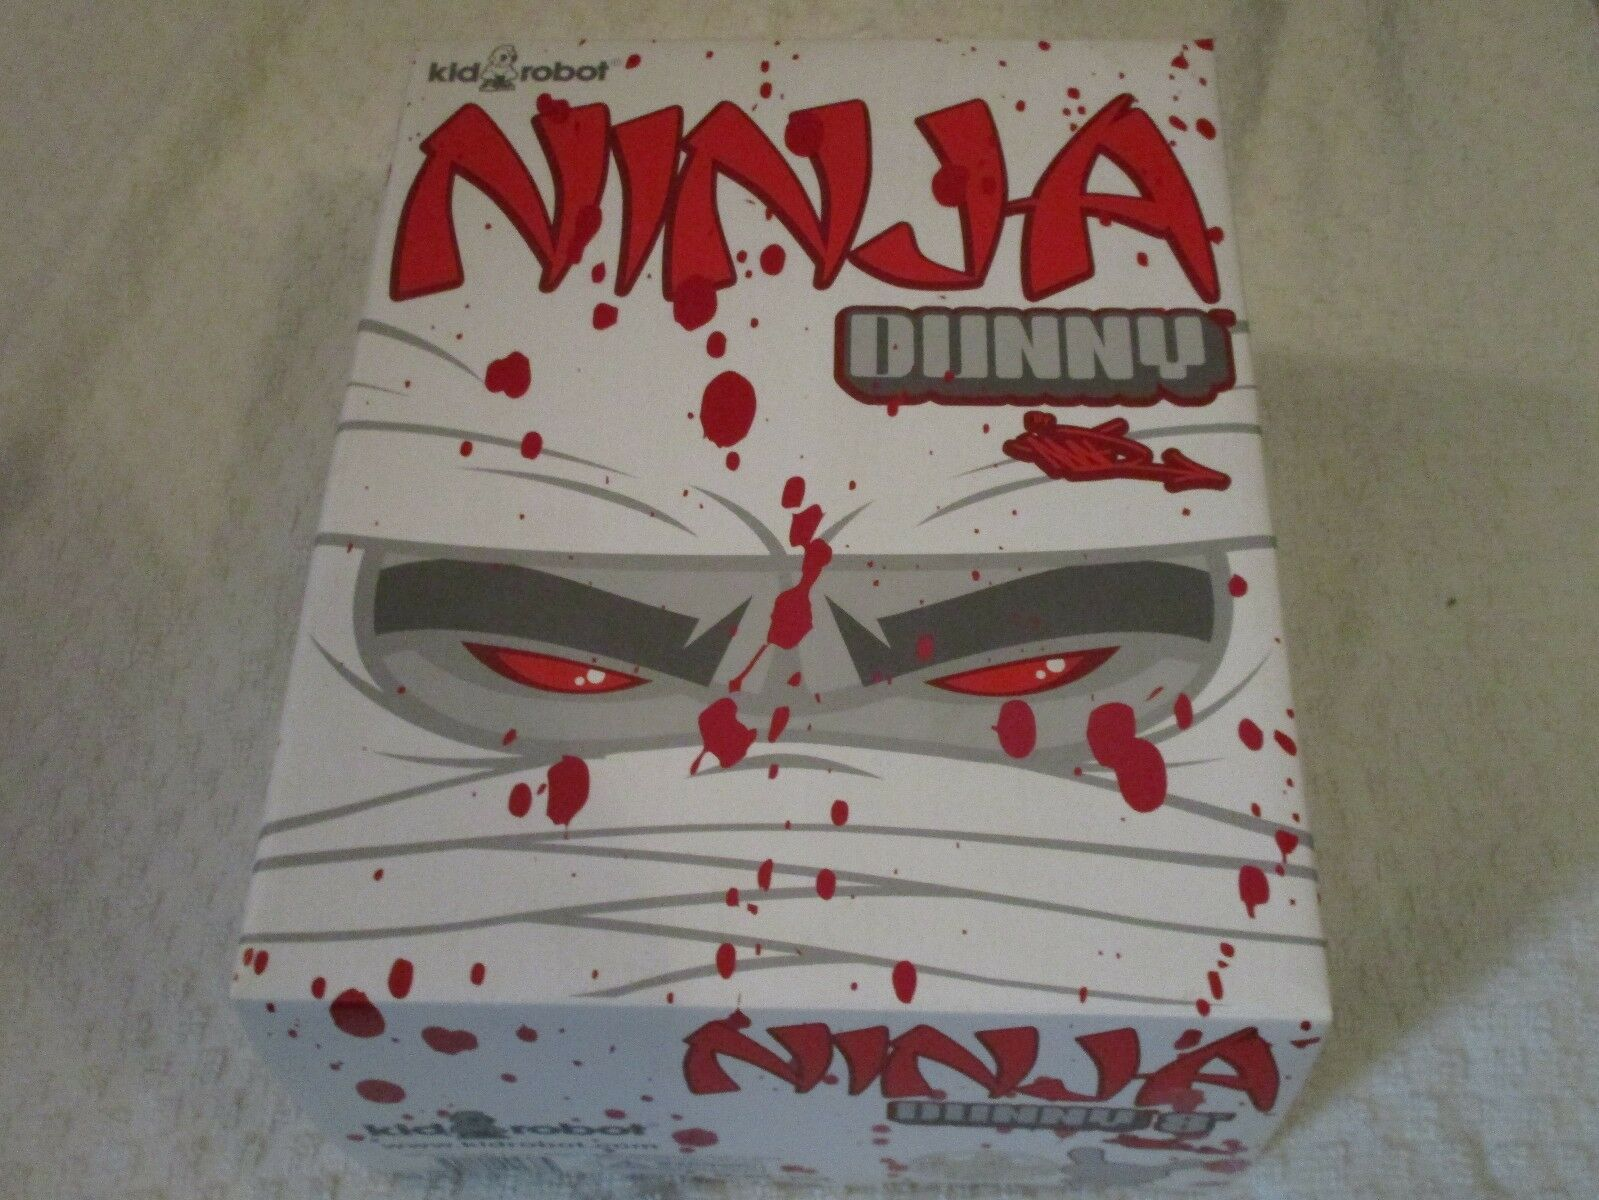 Kidrobot 8  White Ninja Dunny Signed by MAD MAD MAD 1e013a